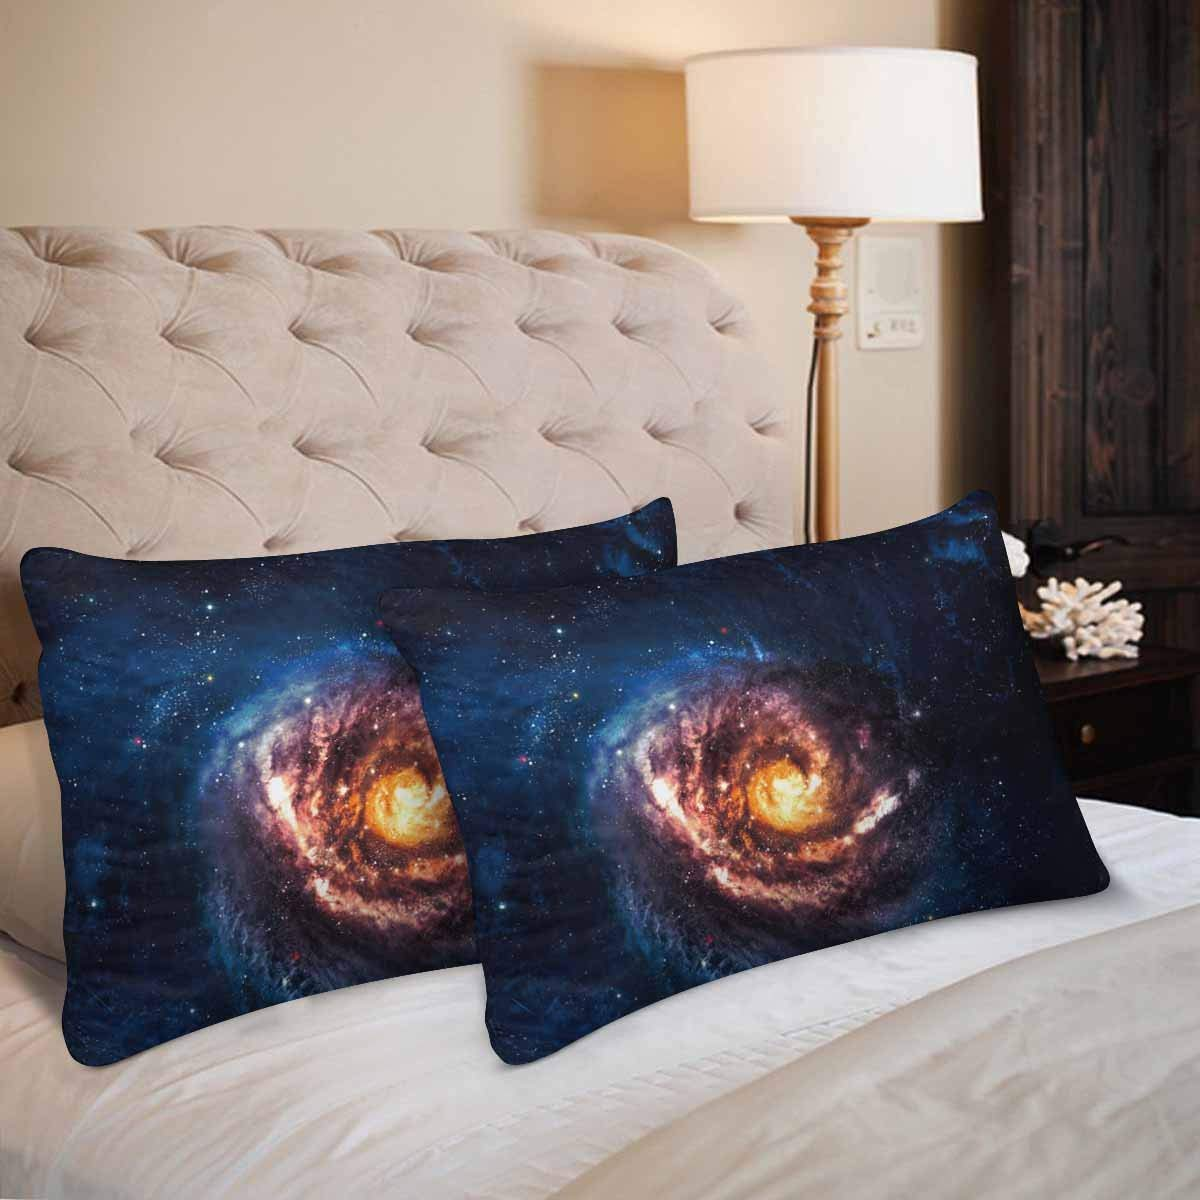 GCKG Beautiful Spiral Galaxy Somewhere Deep Space Pillow Cases Pillowcase 20x30 inches Set of 2 - image 1 de 4